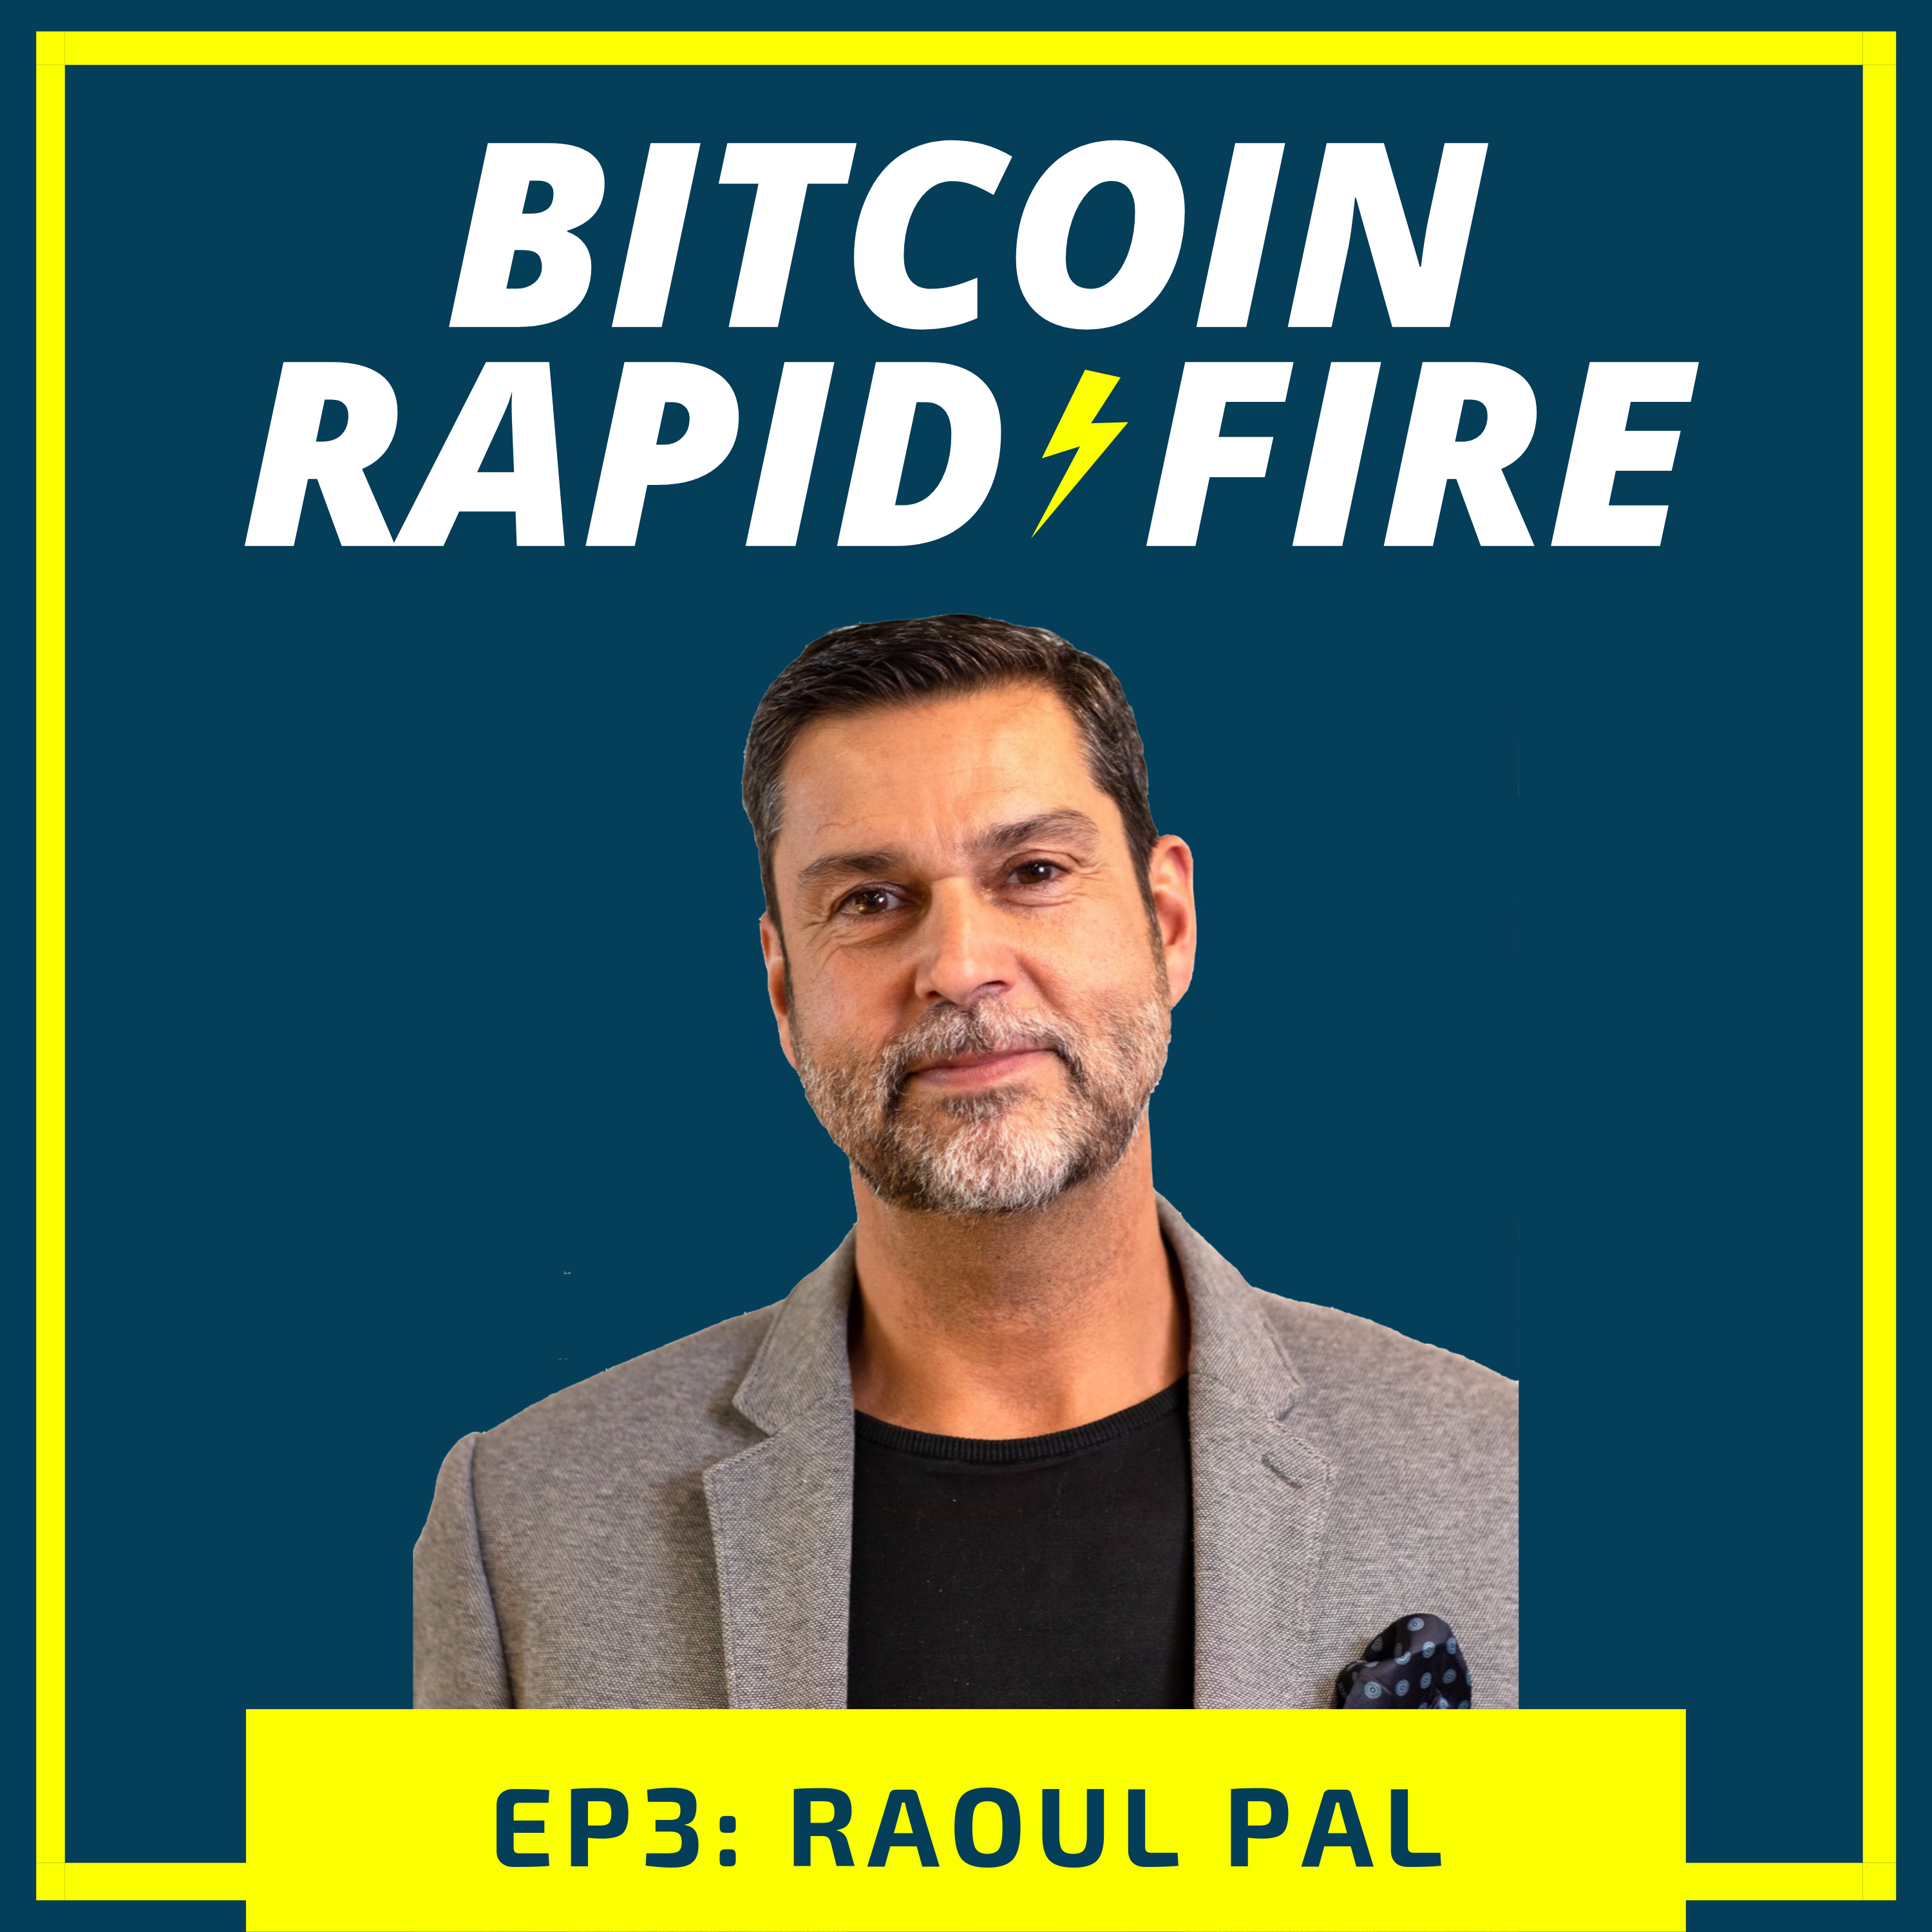 Raoul Pal, Macro Investor: Global Markets on the Edge, the